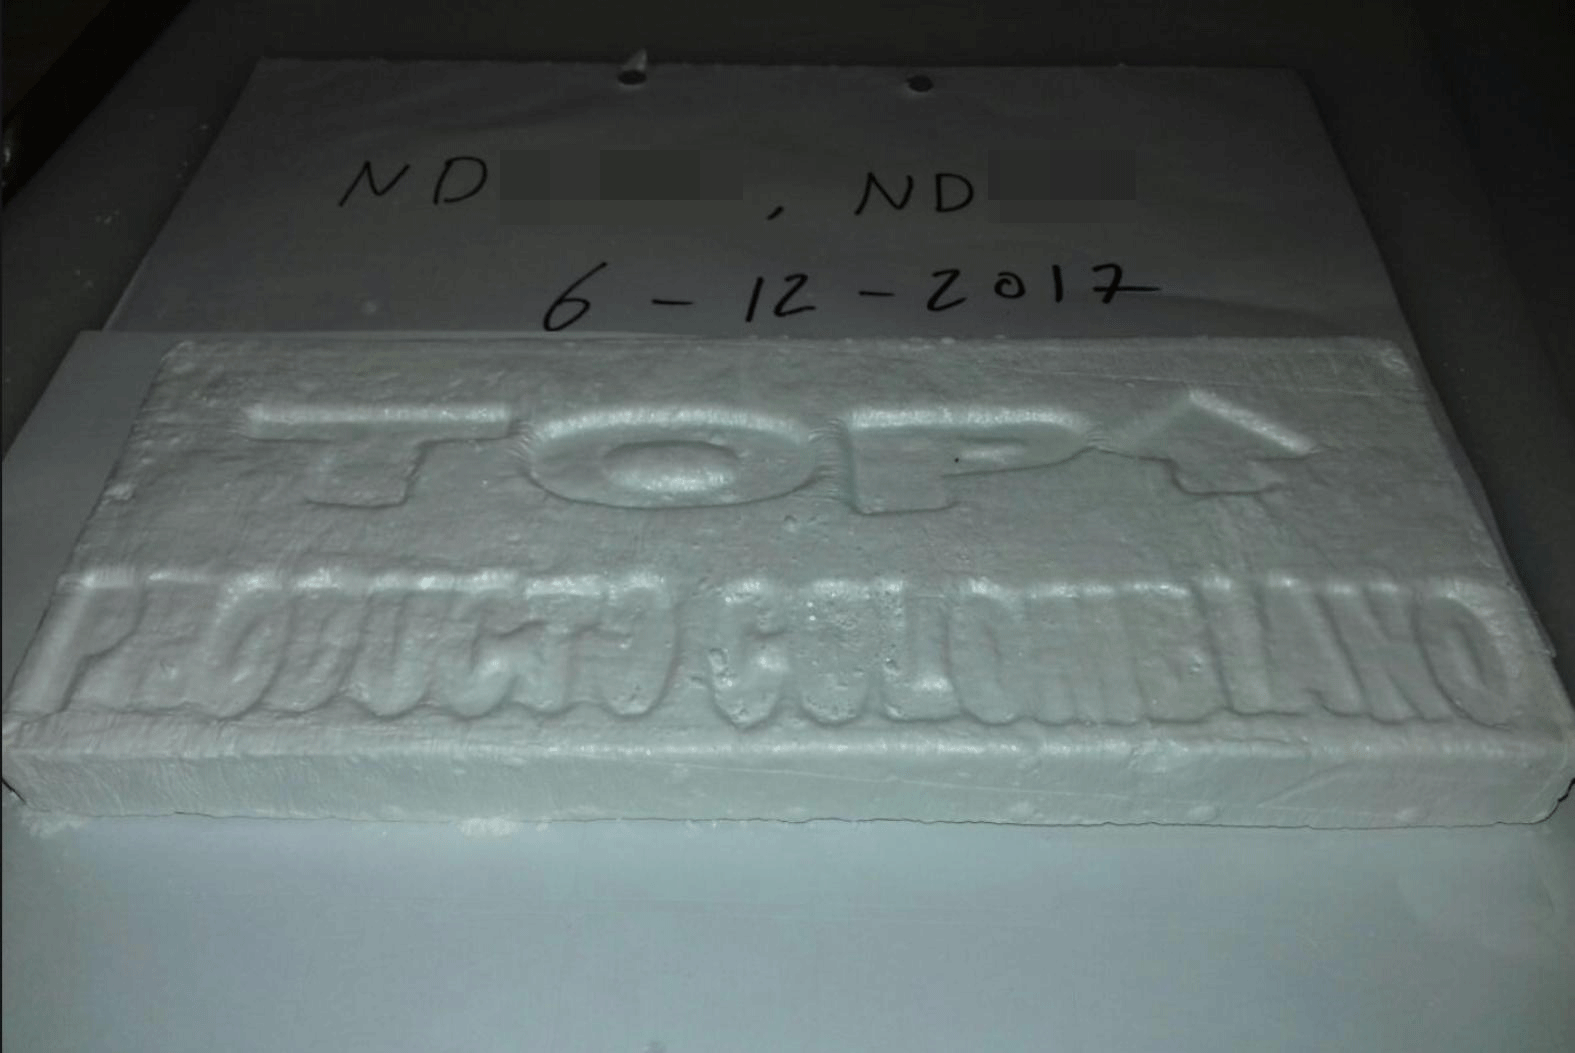 2f86c40e354 A block of cocaine stamped with